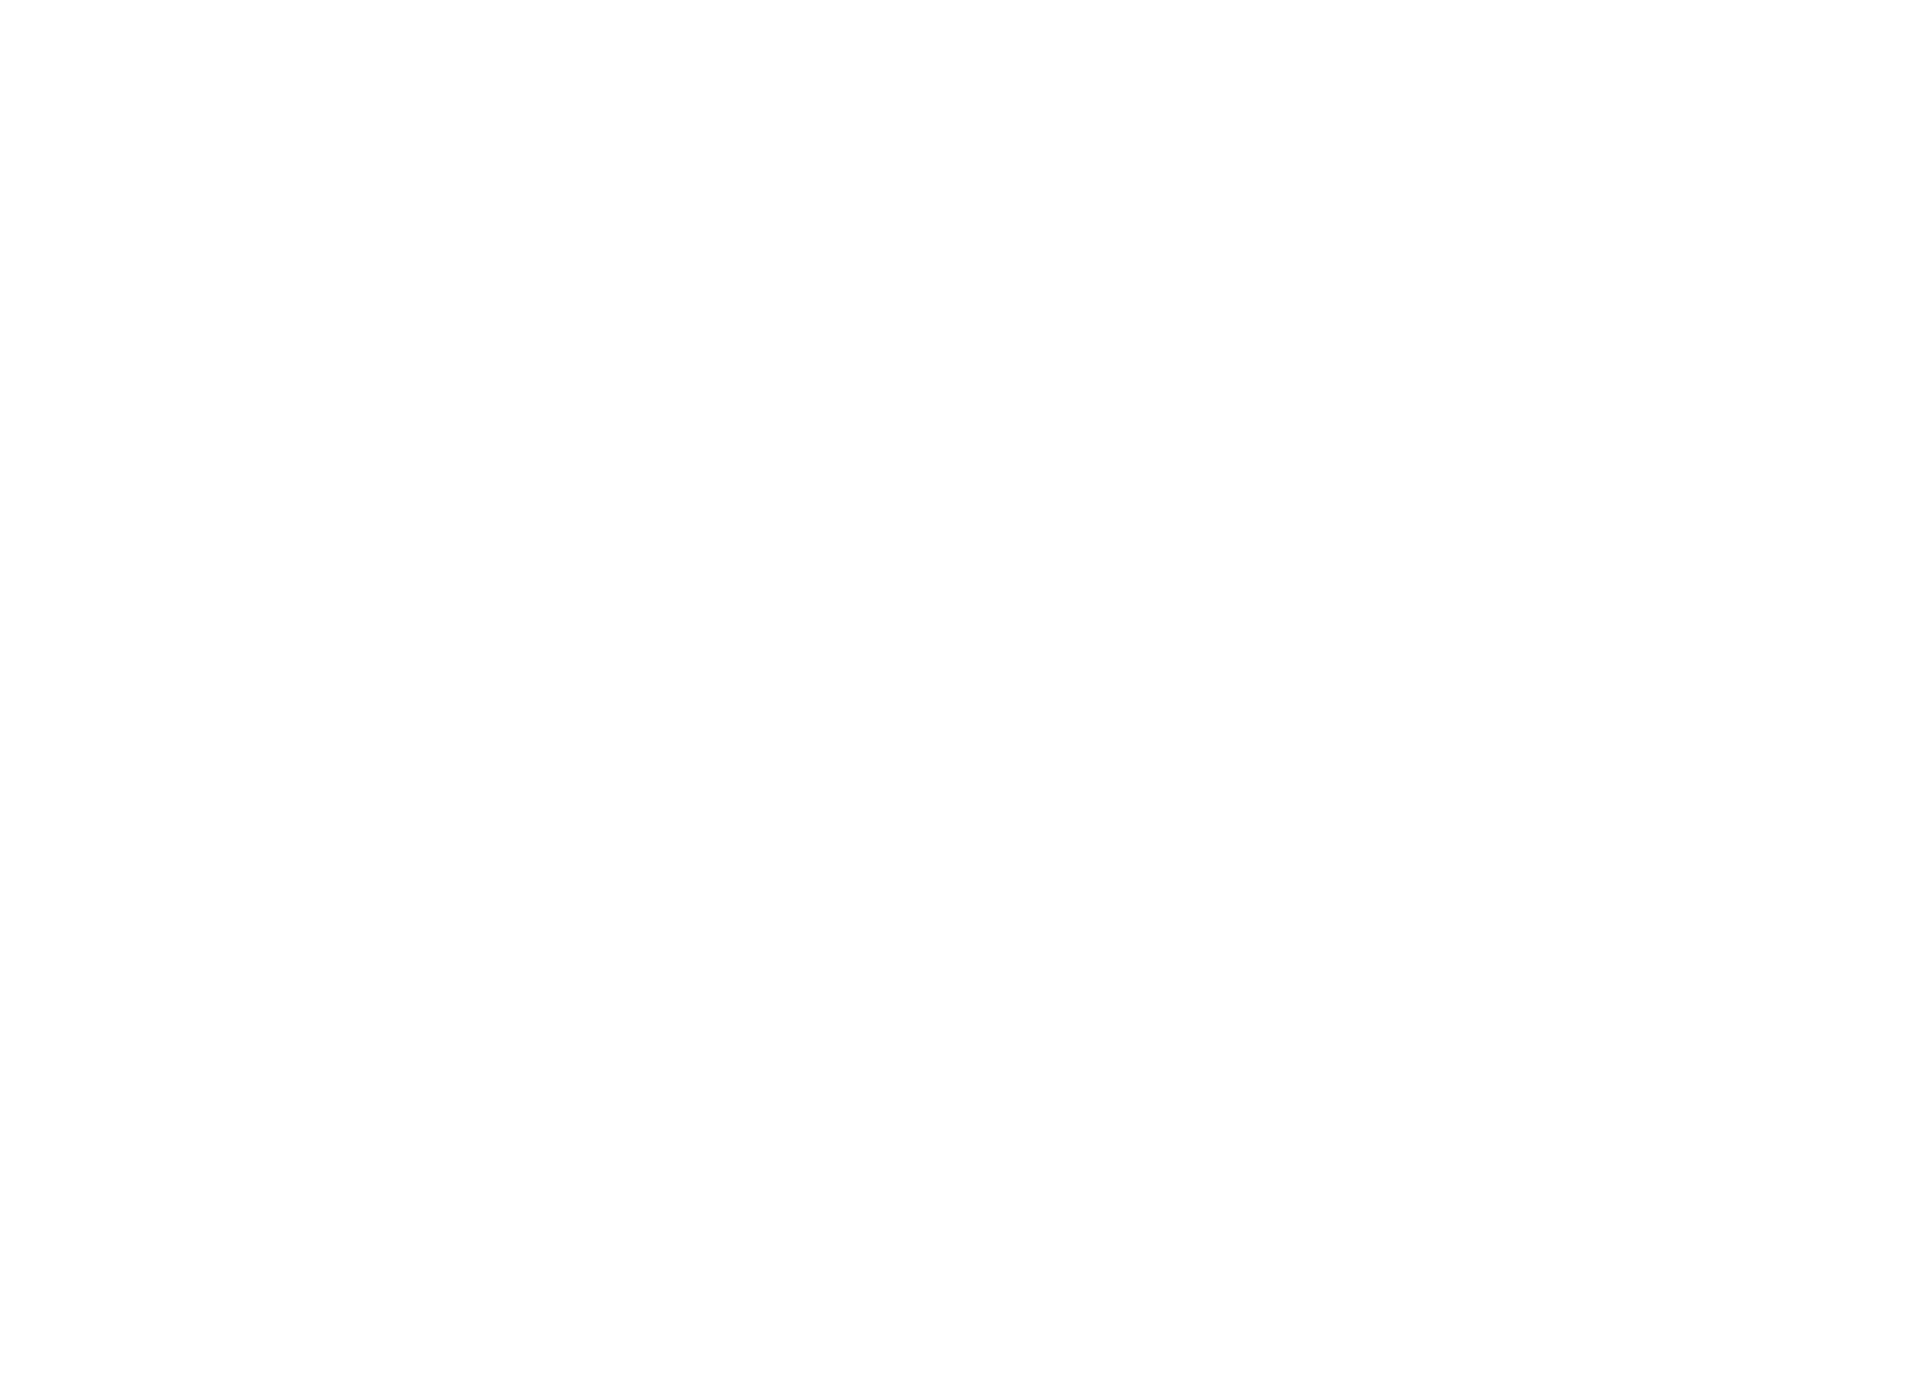 fantom logo above 2